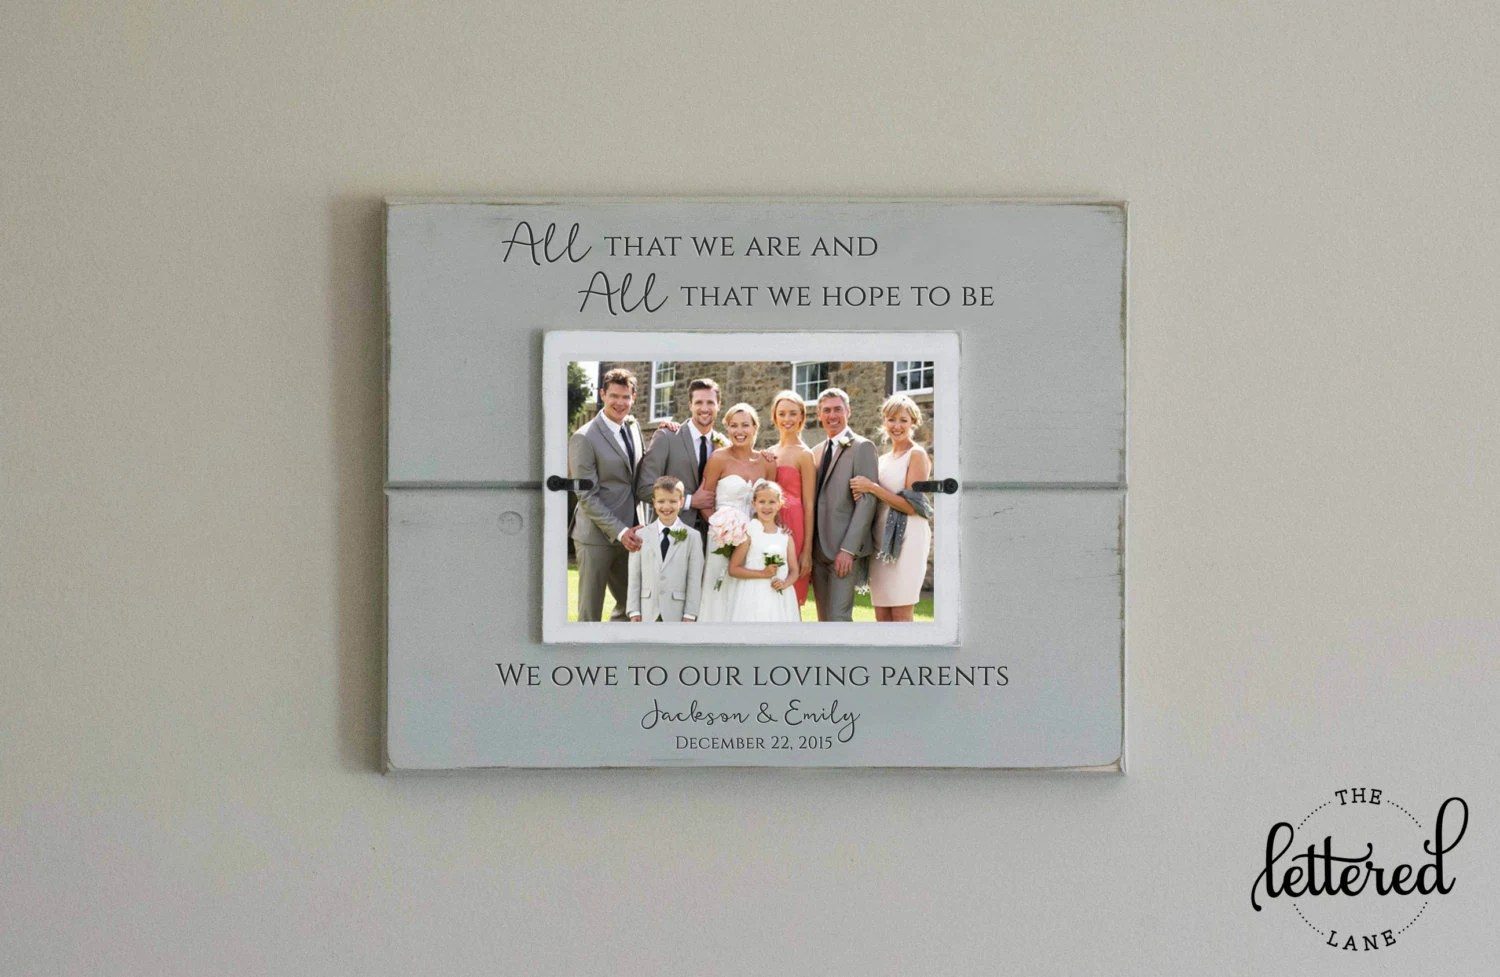 grooms parents gift parent wedding gifts Parents Wedding Gift Frame All that we are all we hope to be we owe to our loving parents picture frame present custom personalized